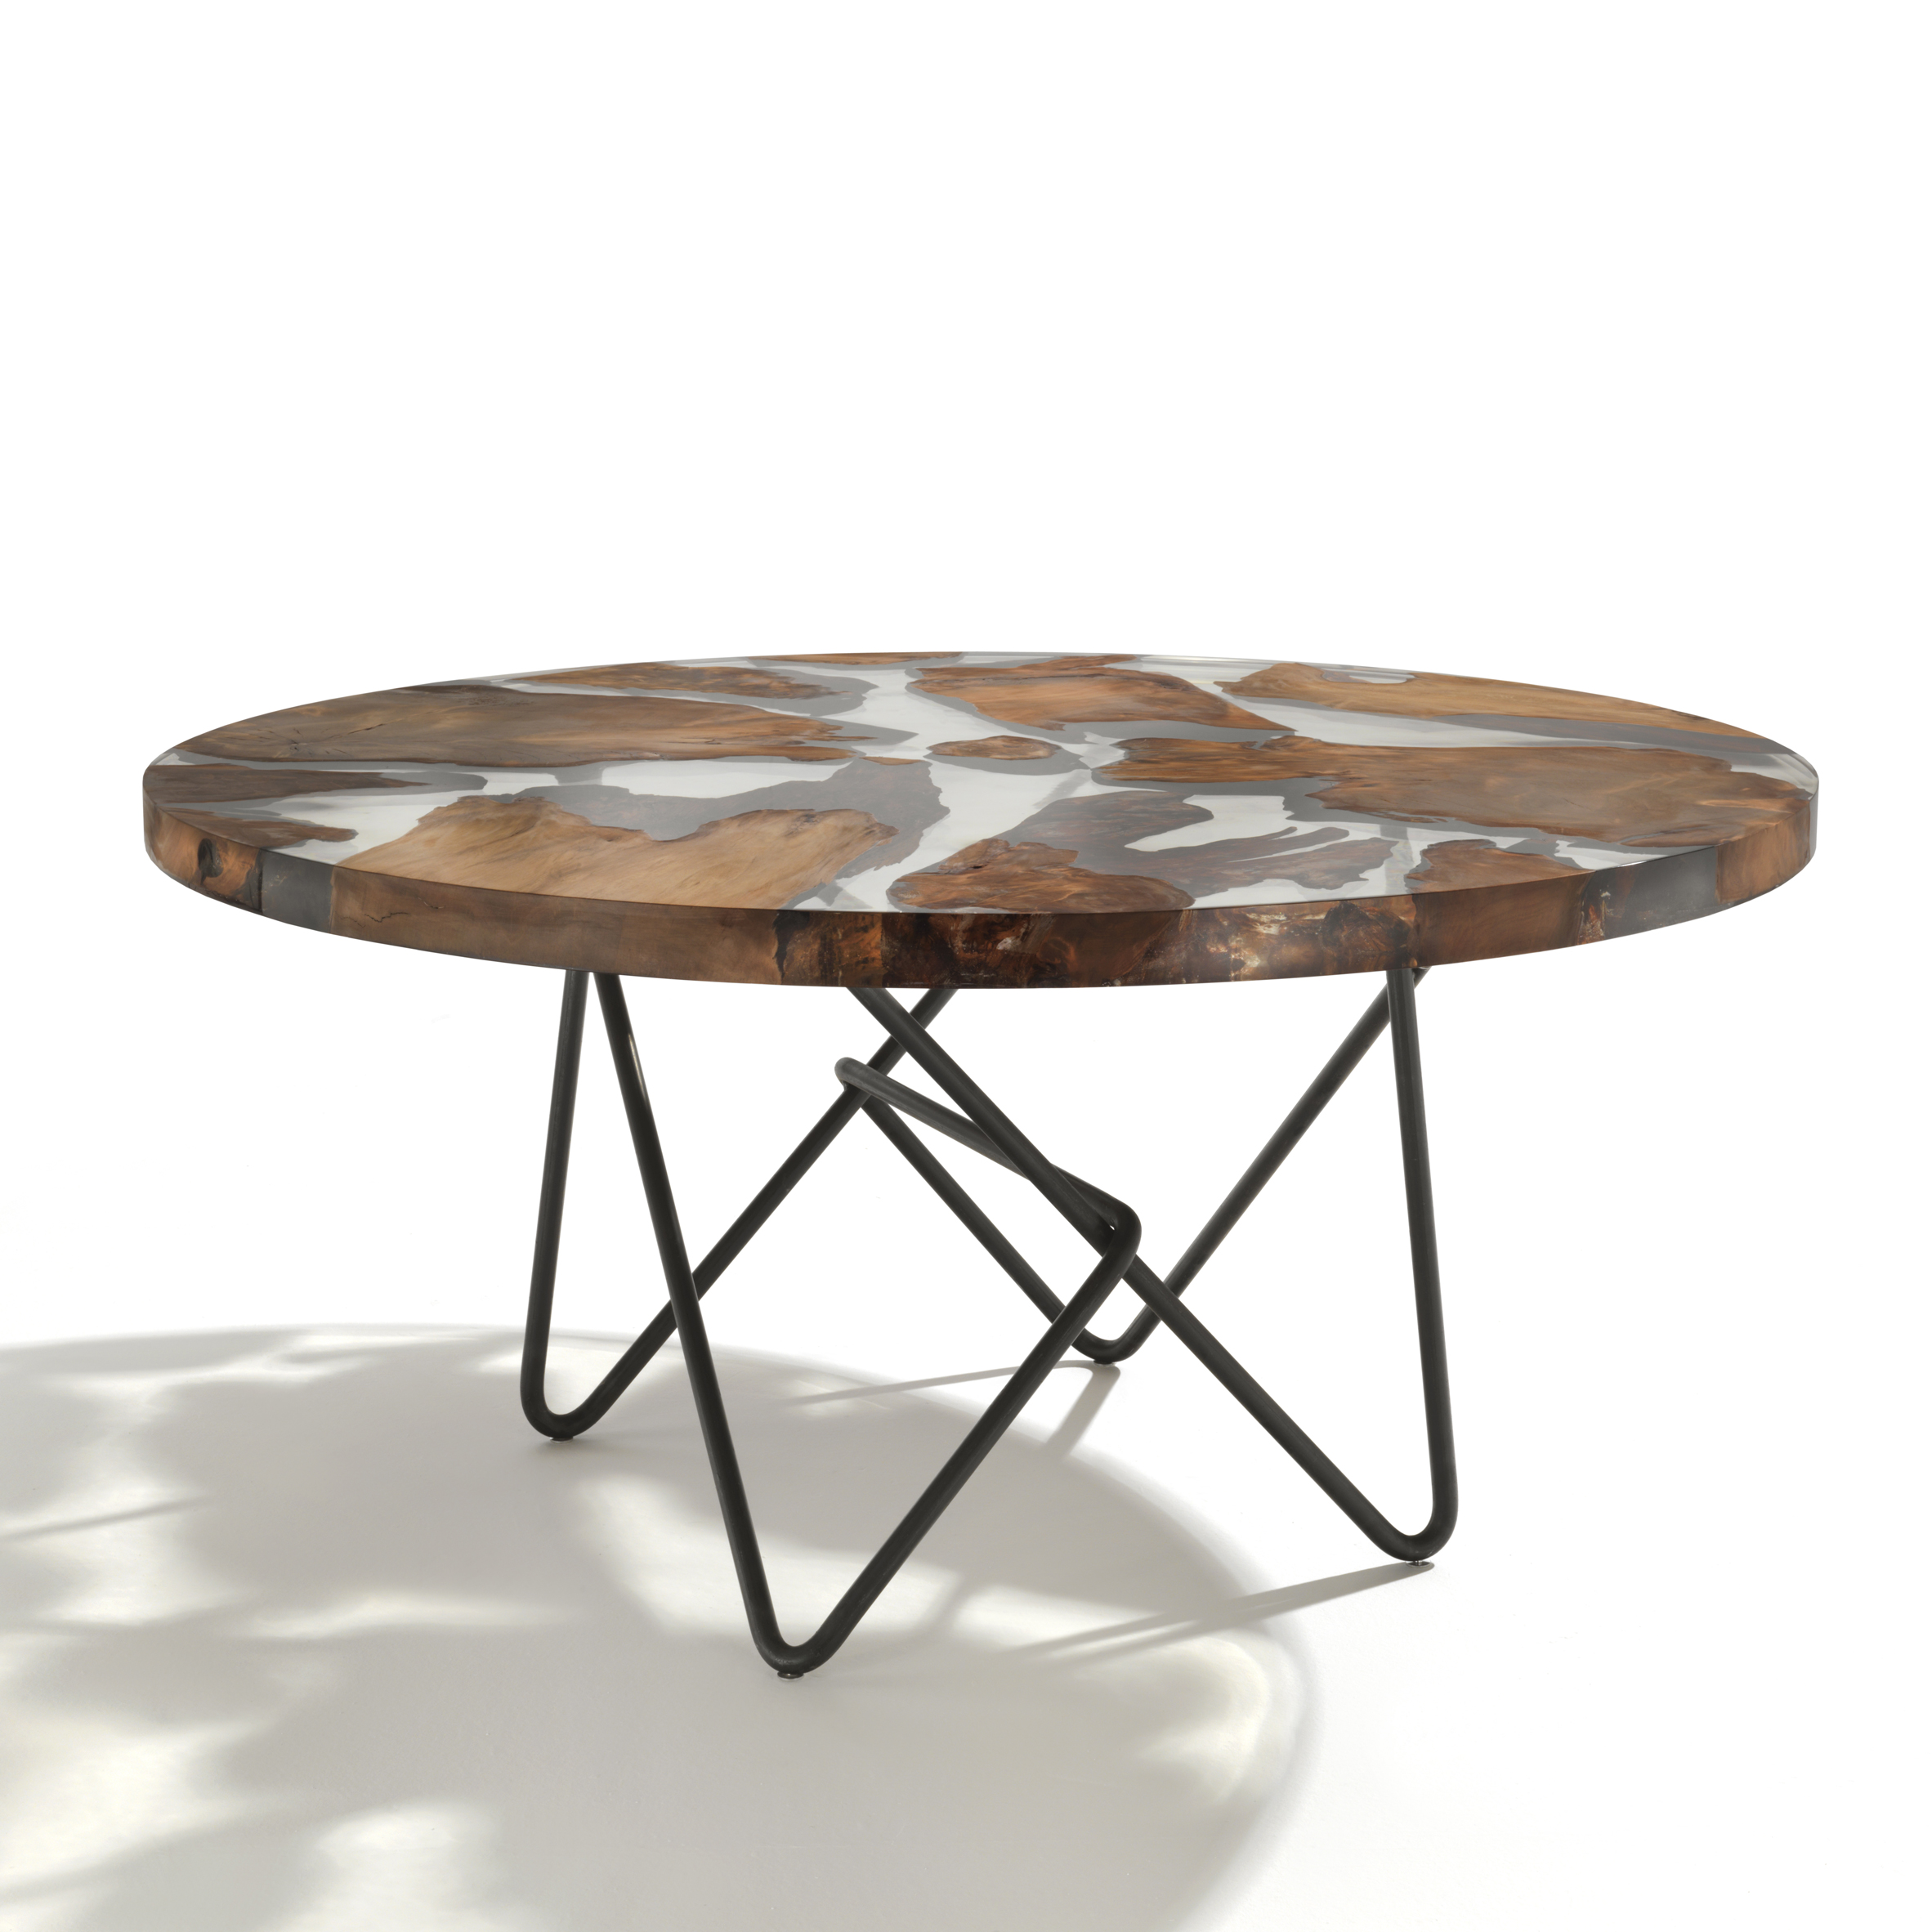 Riva 1920 designs symbolic earth shaped table for world for Table riva but